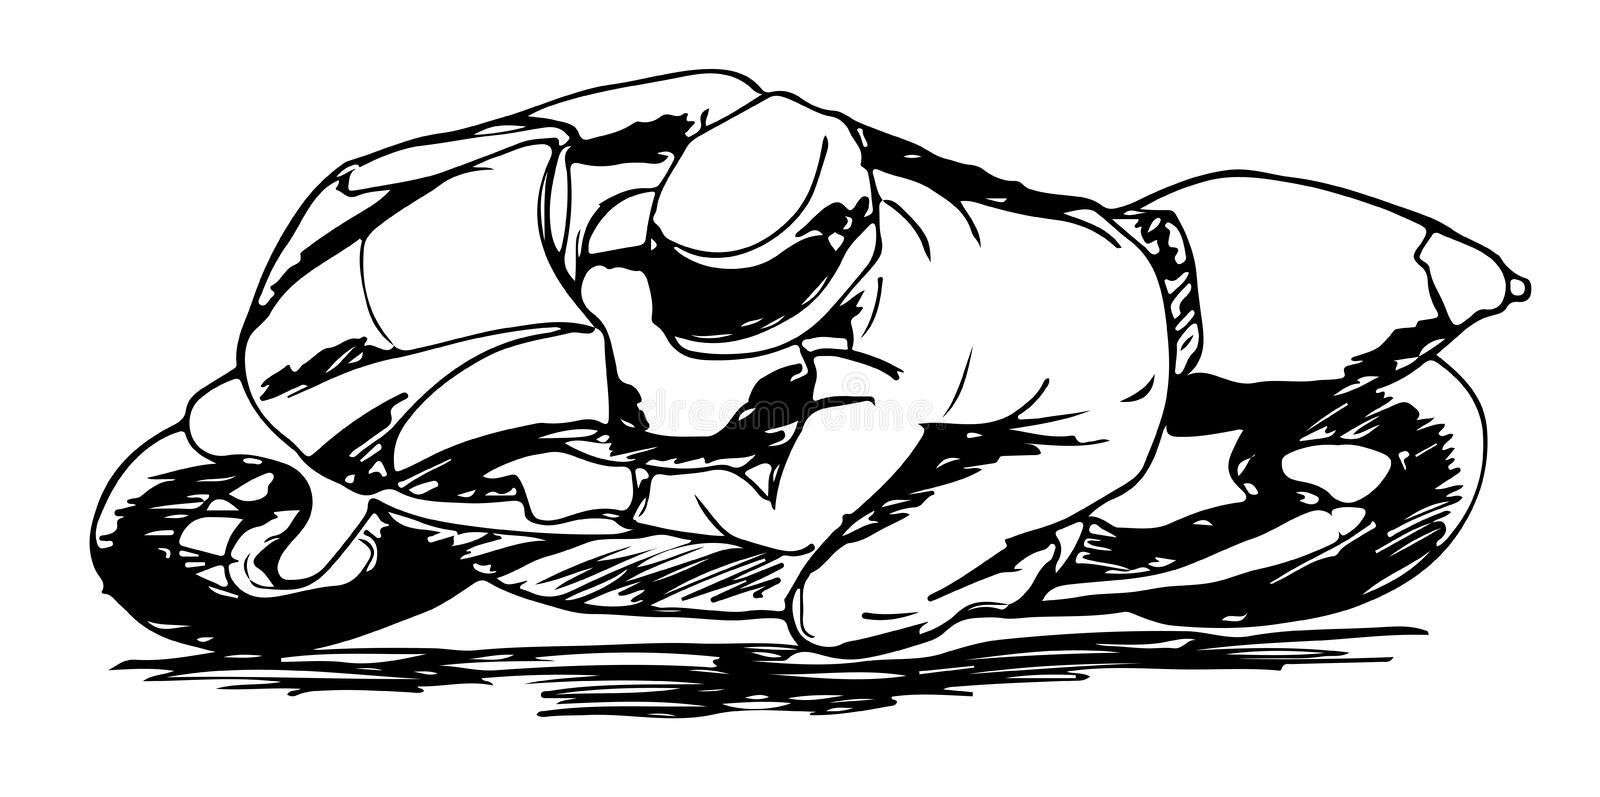 A hand drawn sketch of sport motorcyclist royalty free illustration